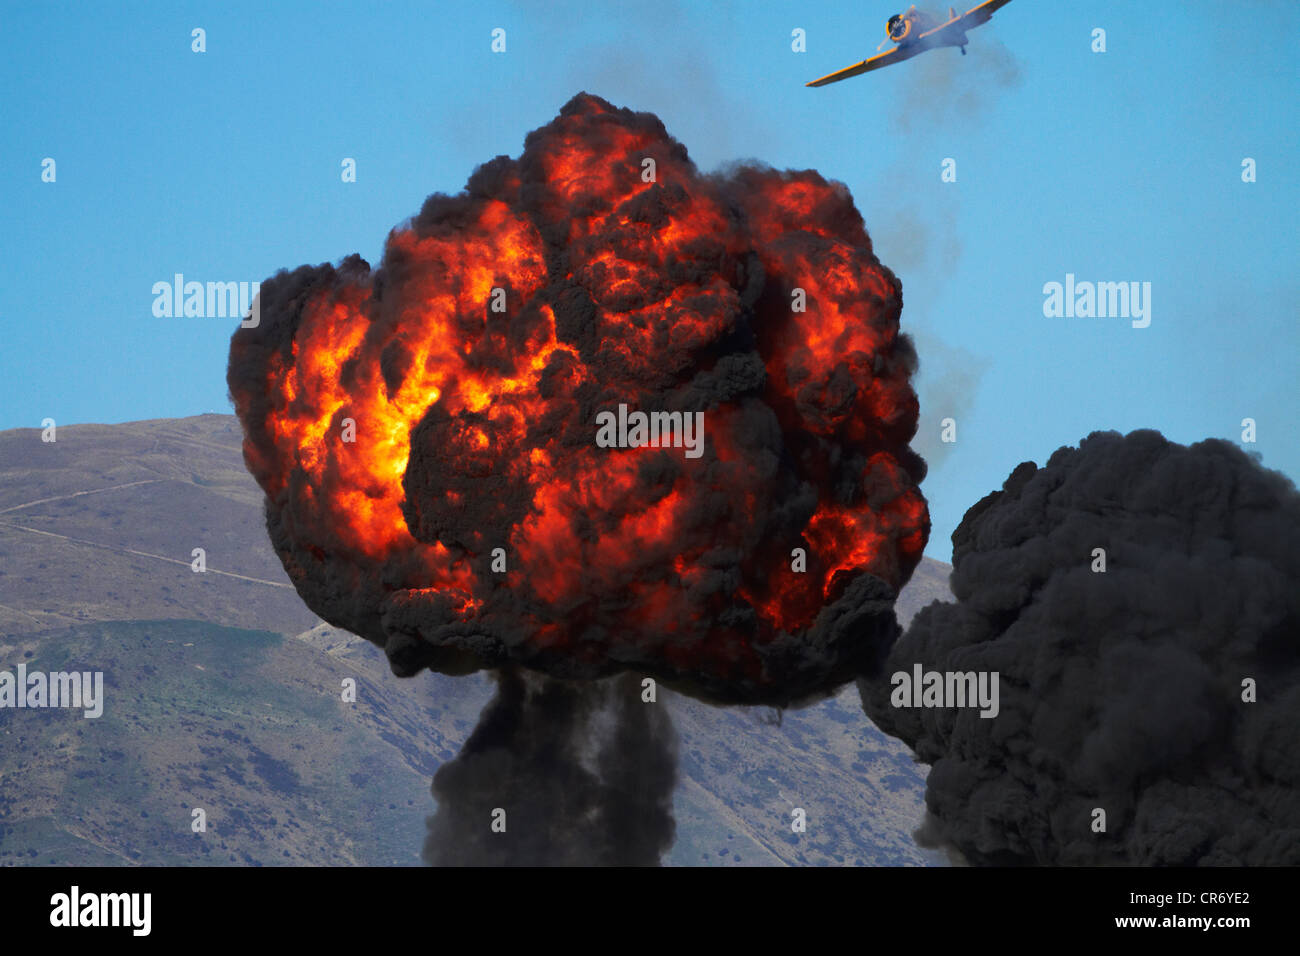 Controlled Explosion at Warbirds Over Wanaka Airshow, Otago, South Island, New Zealand - Stock Image